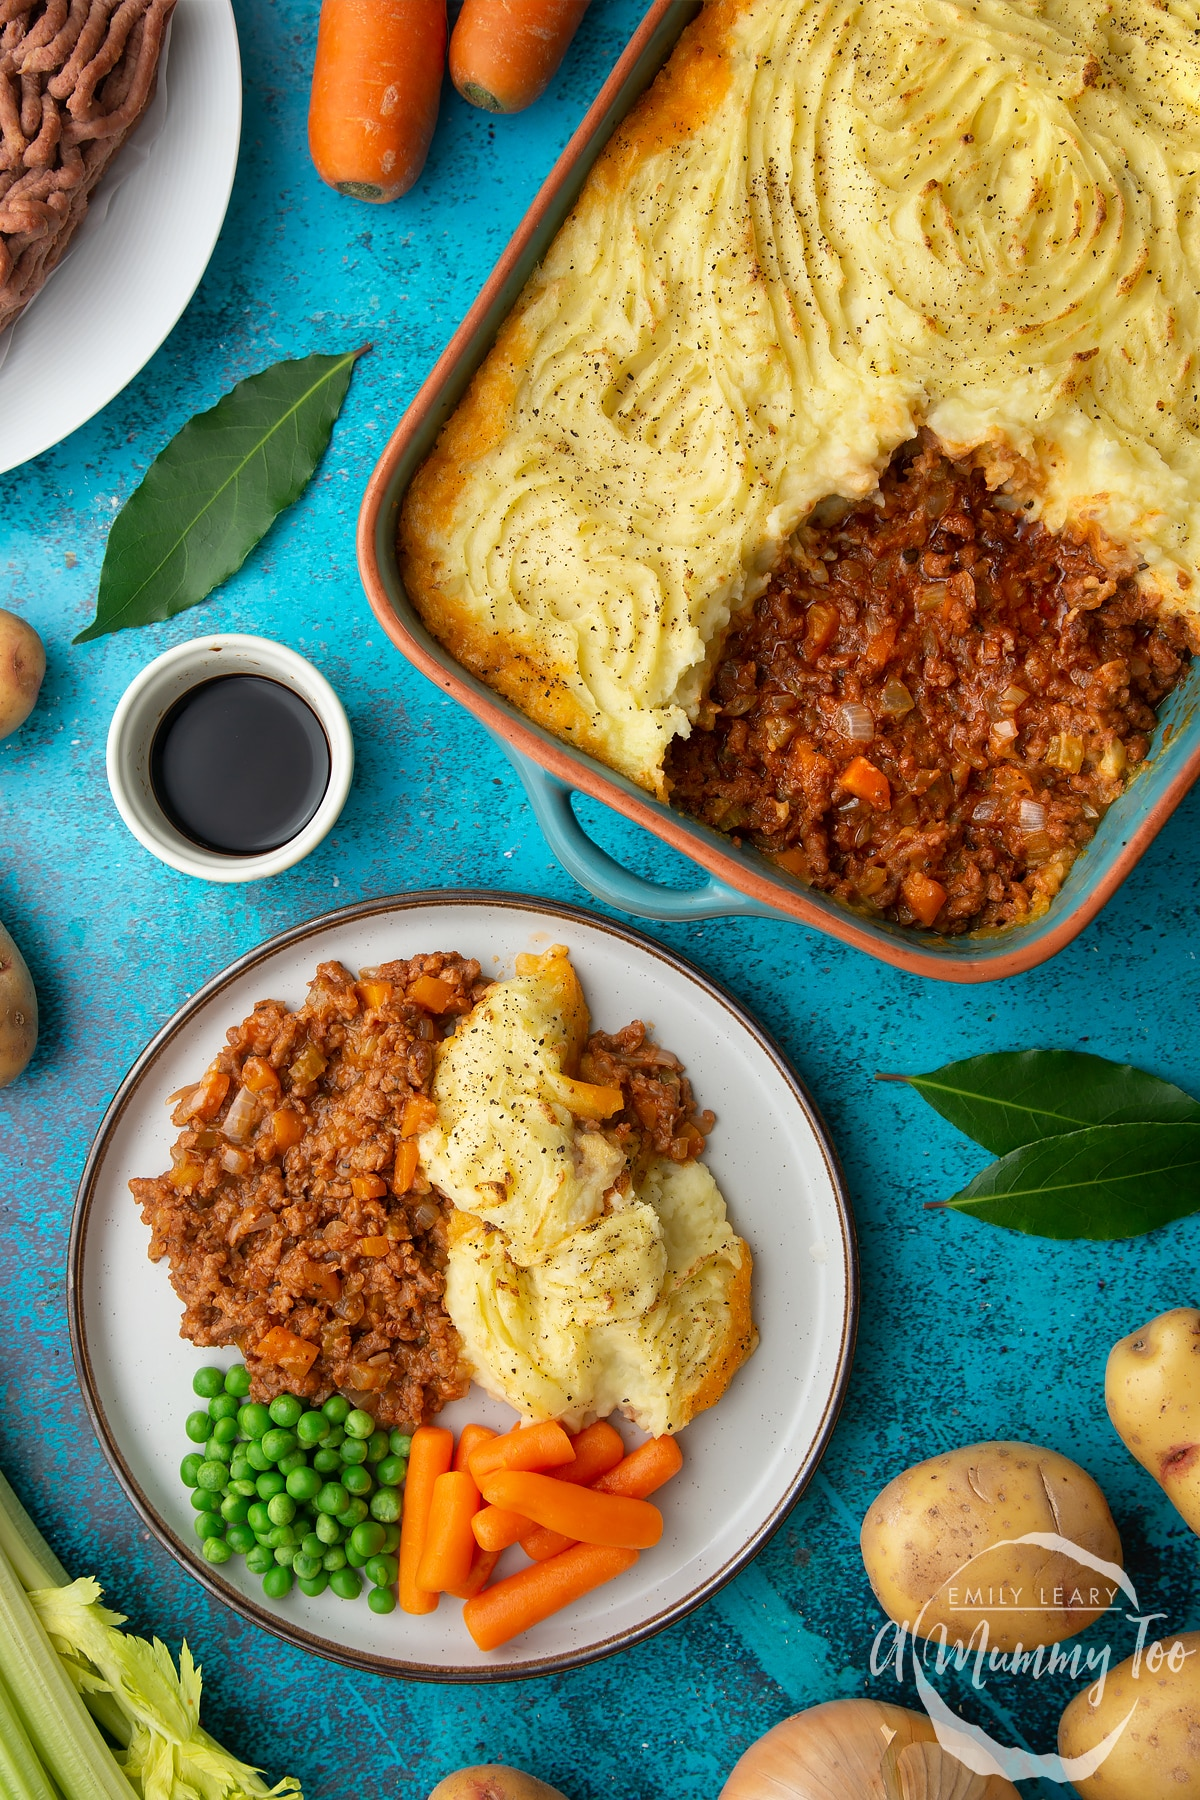 Vegan cottage pie served on a plate with peas and carrots. More pie is shown in its dish. Ingredients are scattered around.